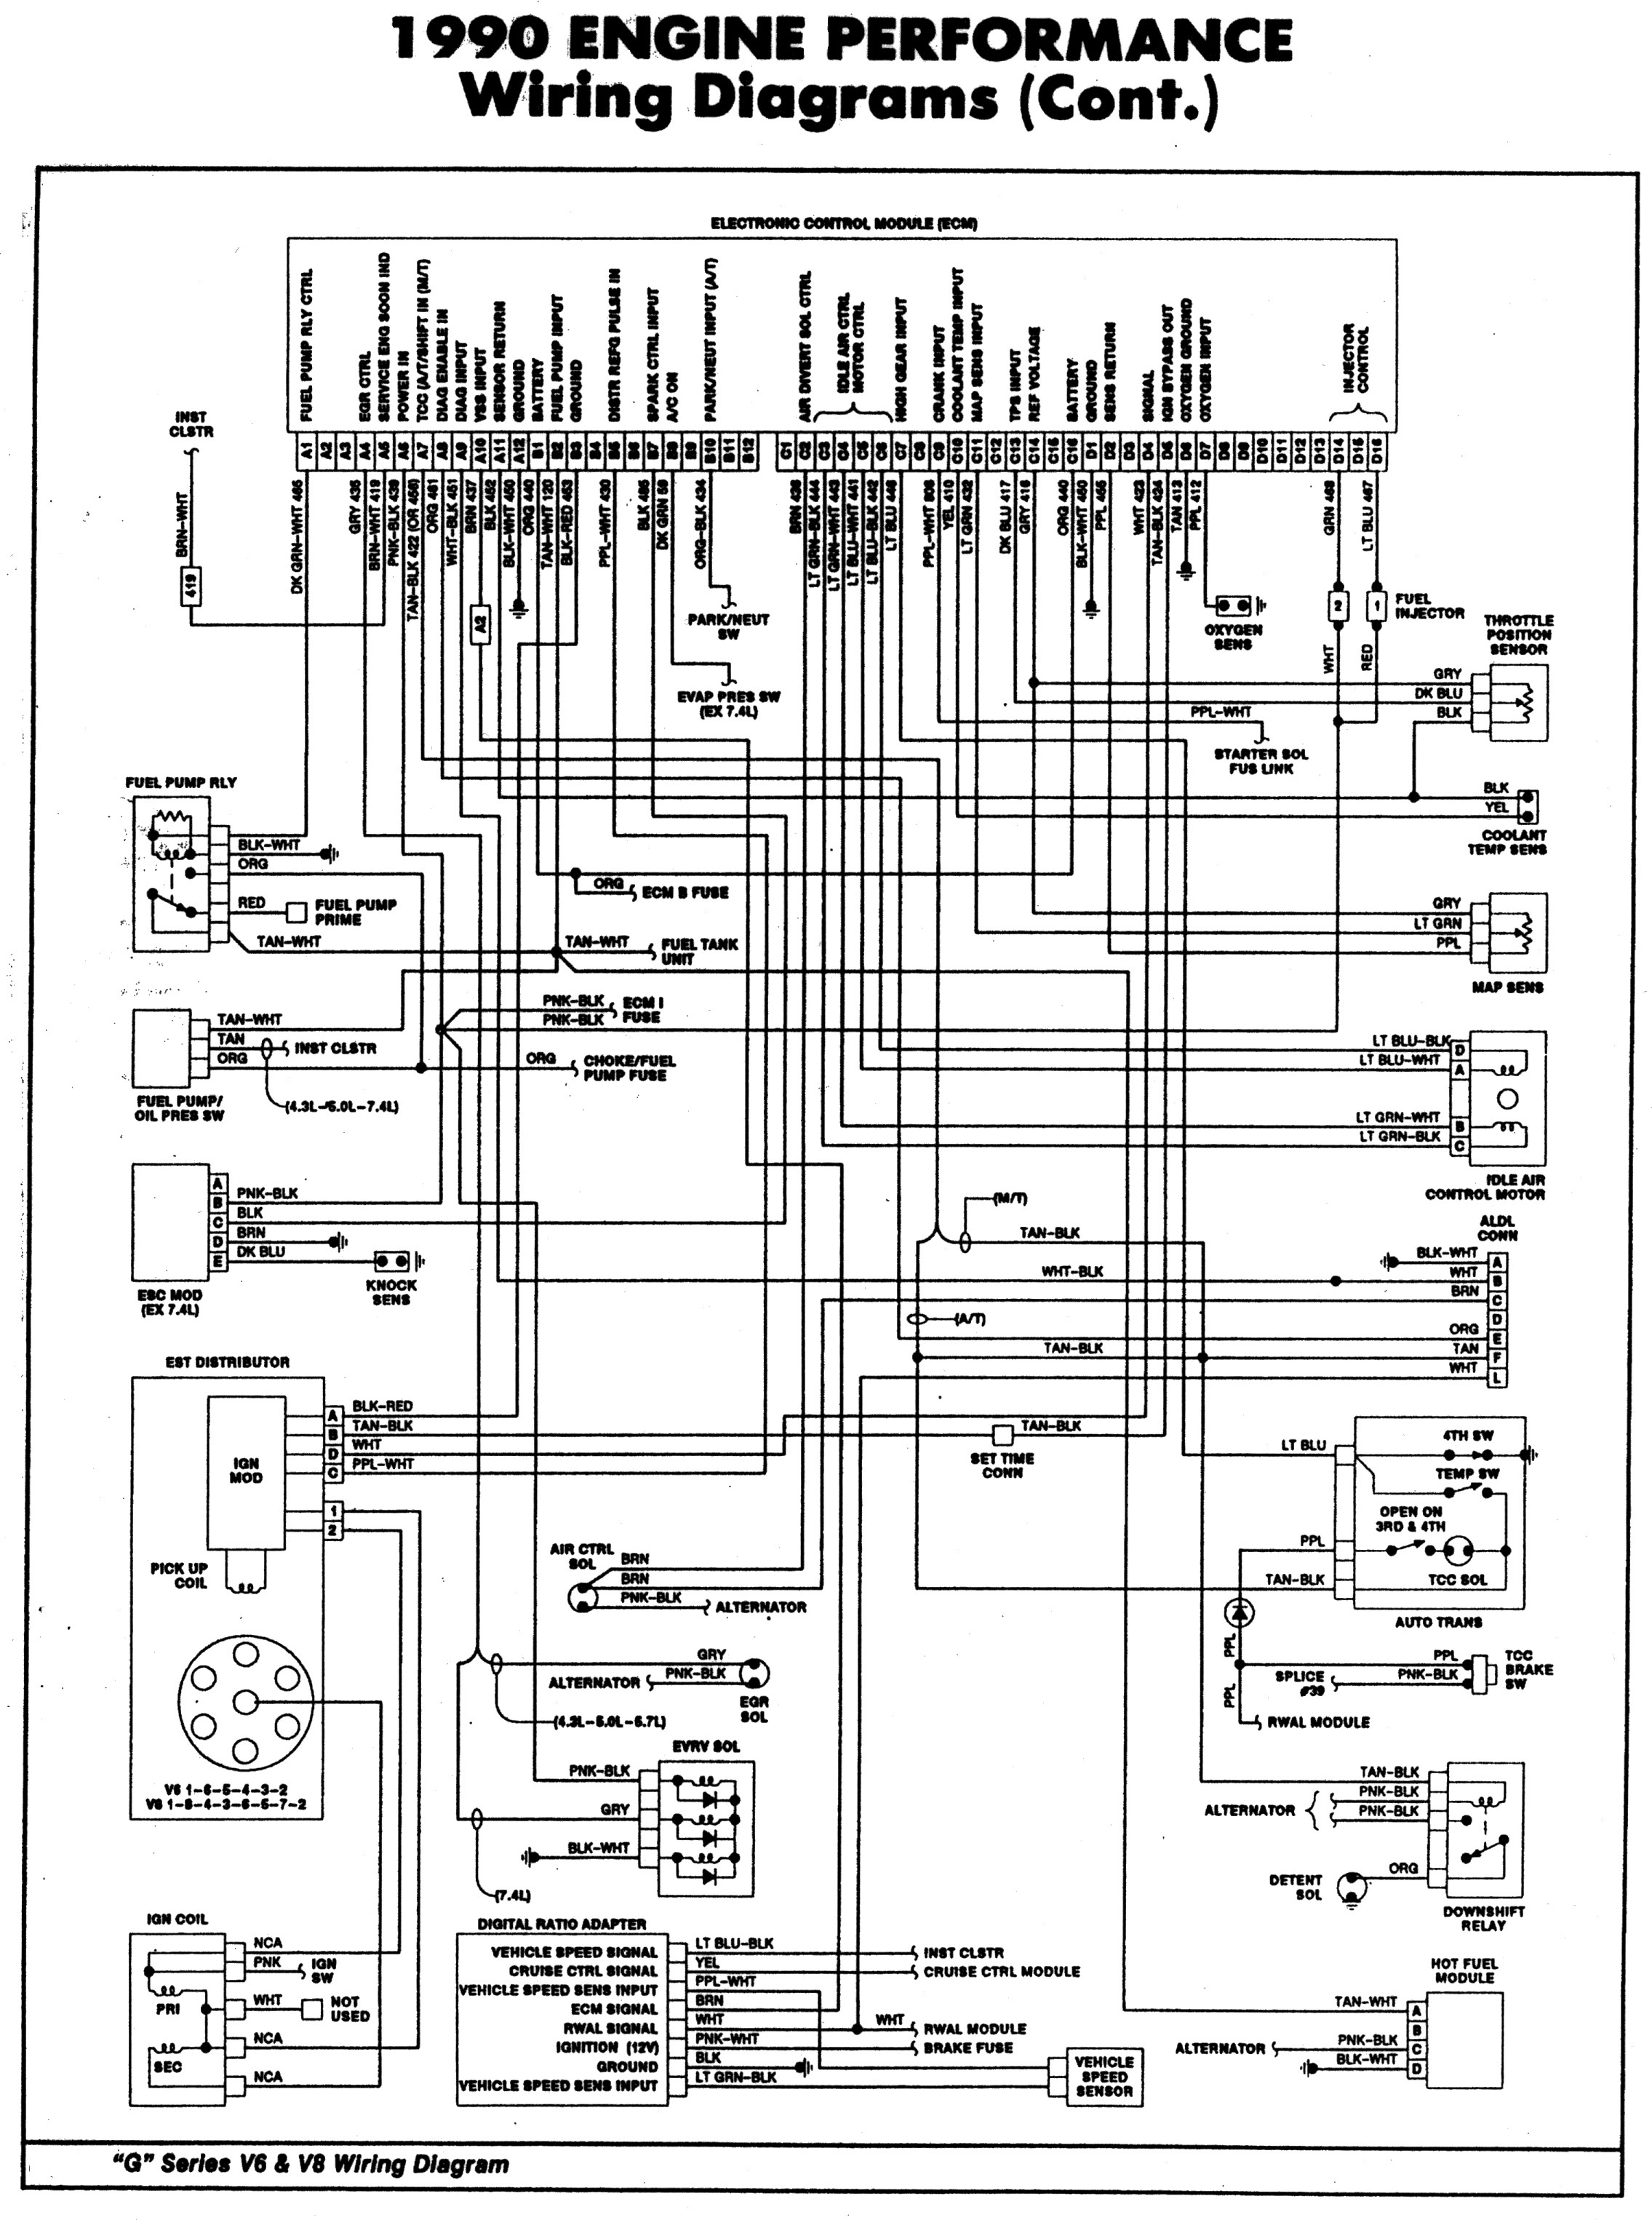 hight resolution of 1990 gmc vandura wiring diagram wiring diagrams favorites 1990 gmc vandura wiring diagram wiring diagram toolbox